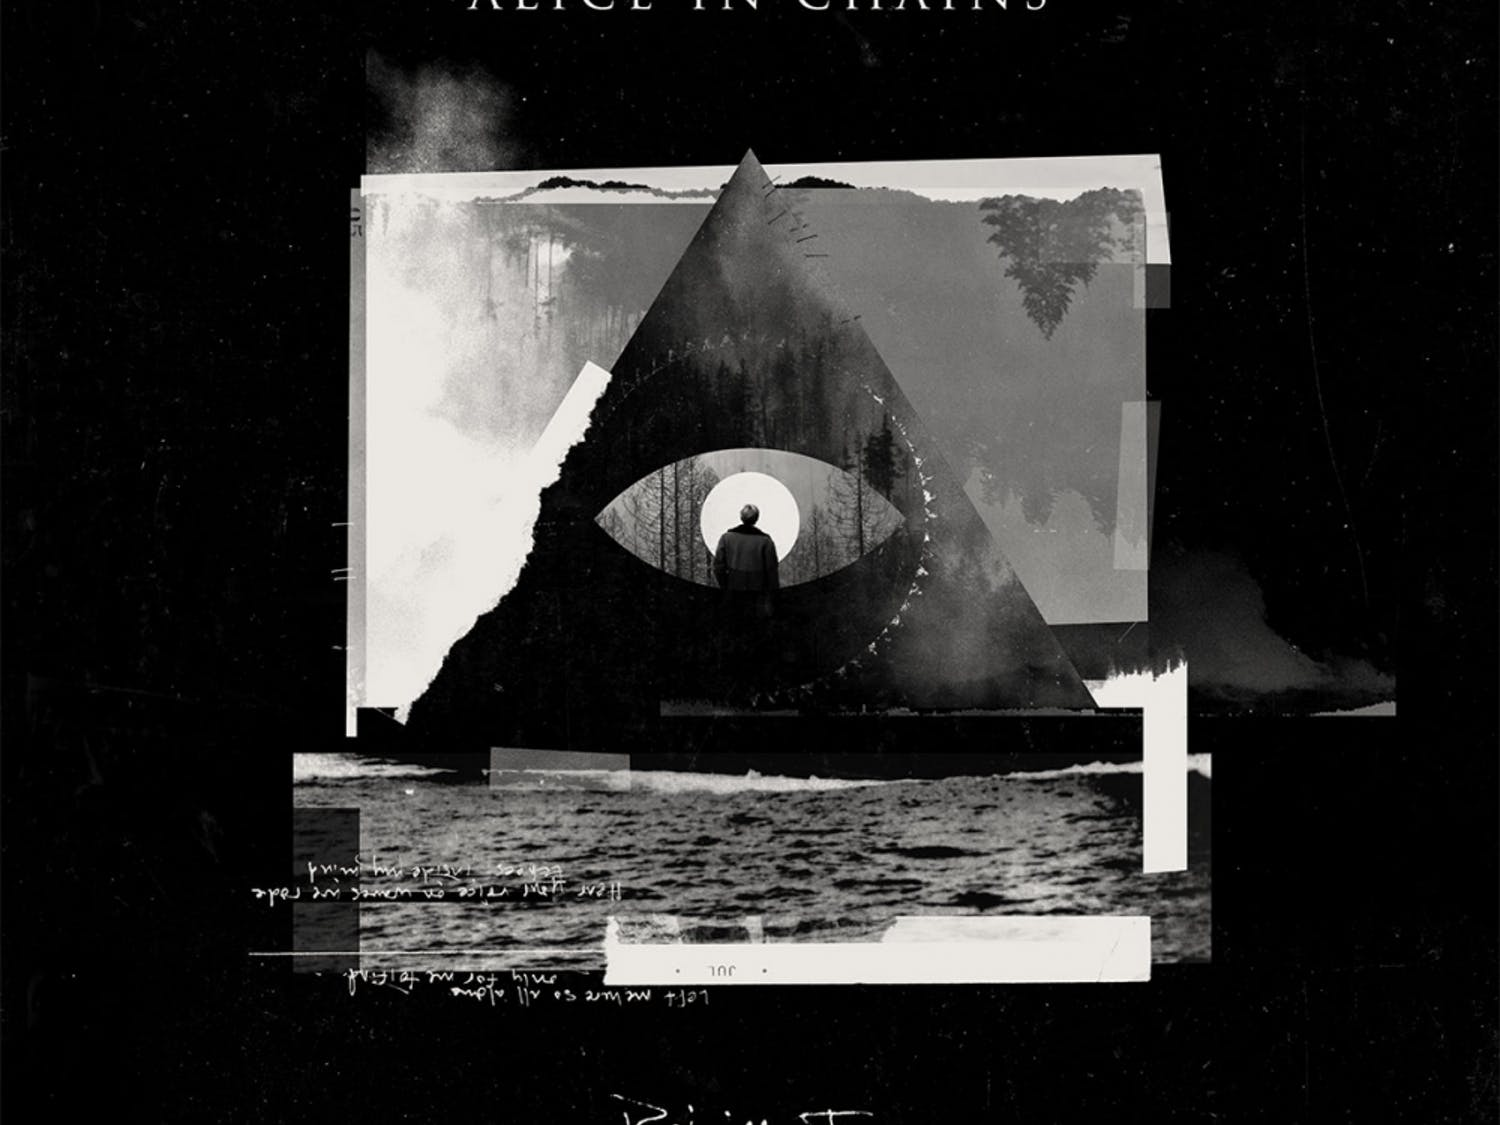 """Alice in Chains spent six albums perfecting a guitar heavy, bombastic sound that listeners have come to know and love. Three albums in with latest lead singer William DuVall, Alice in Chains attempts to keep the ball rolling off of the success of their previous two albums. With """"Rainier Fog,"""" however, Alice in Chains sounds lost in its own complacent mindset bent on maintenance rather than experimentation."""